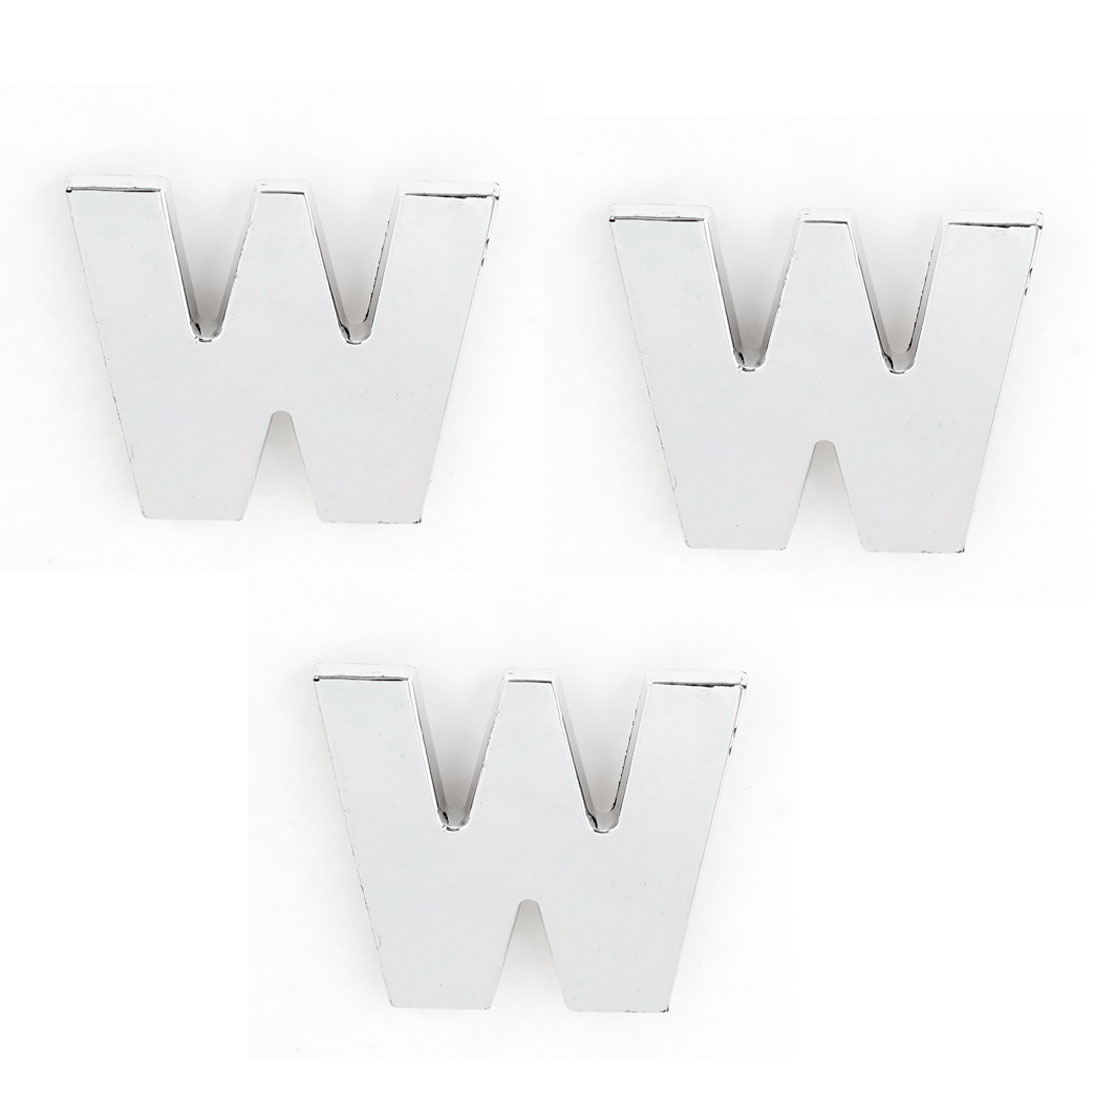 3PCS Adhesive English Letter W Shaped 3D Stickers Ornament Silver Tone for Auto